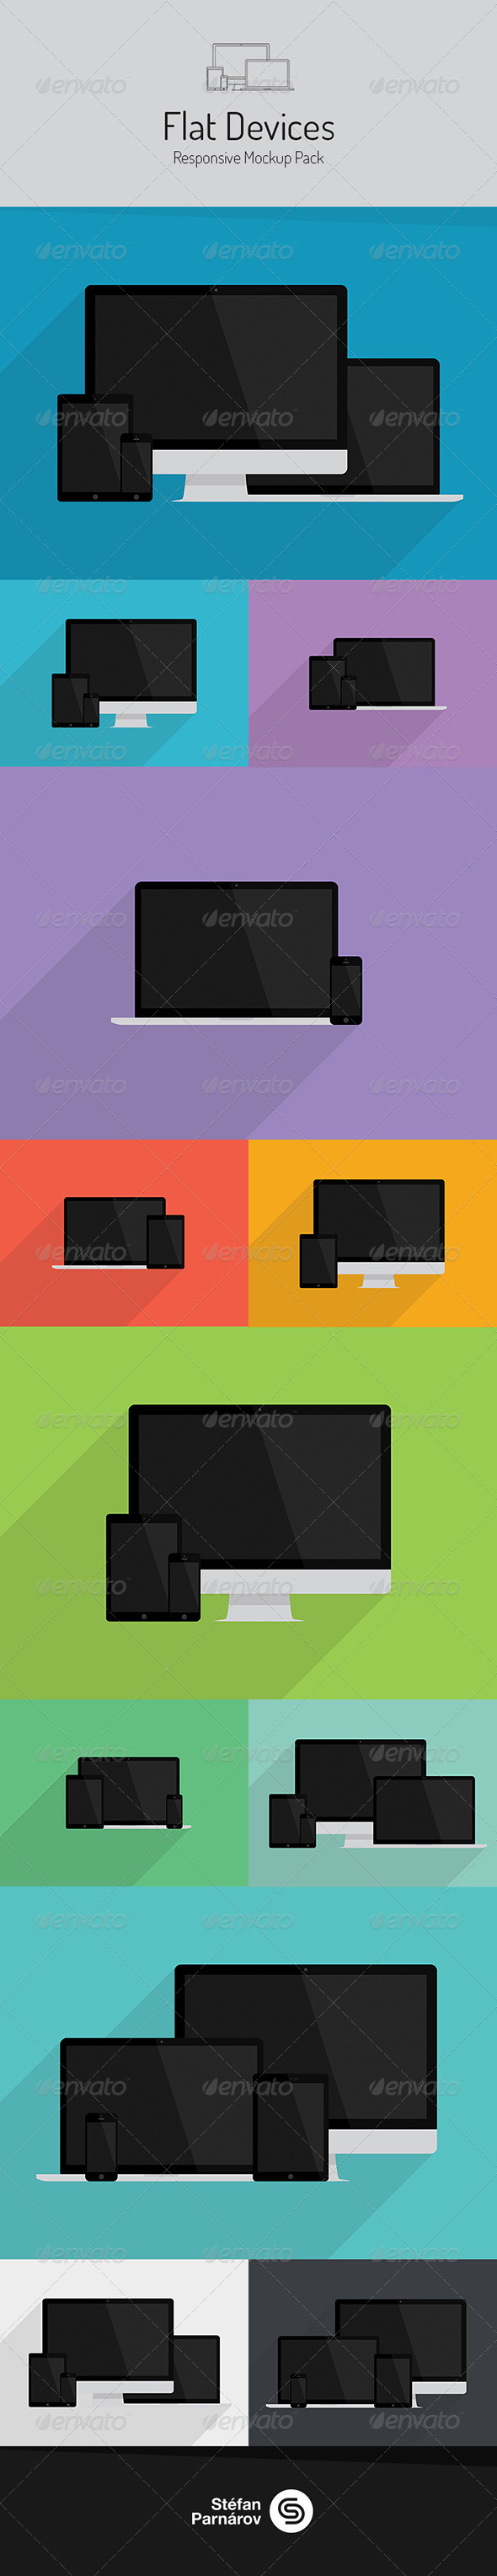 Flat Devices Responsive Mockup Pack